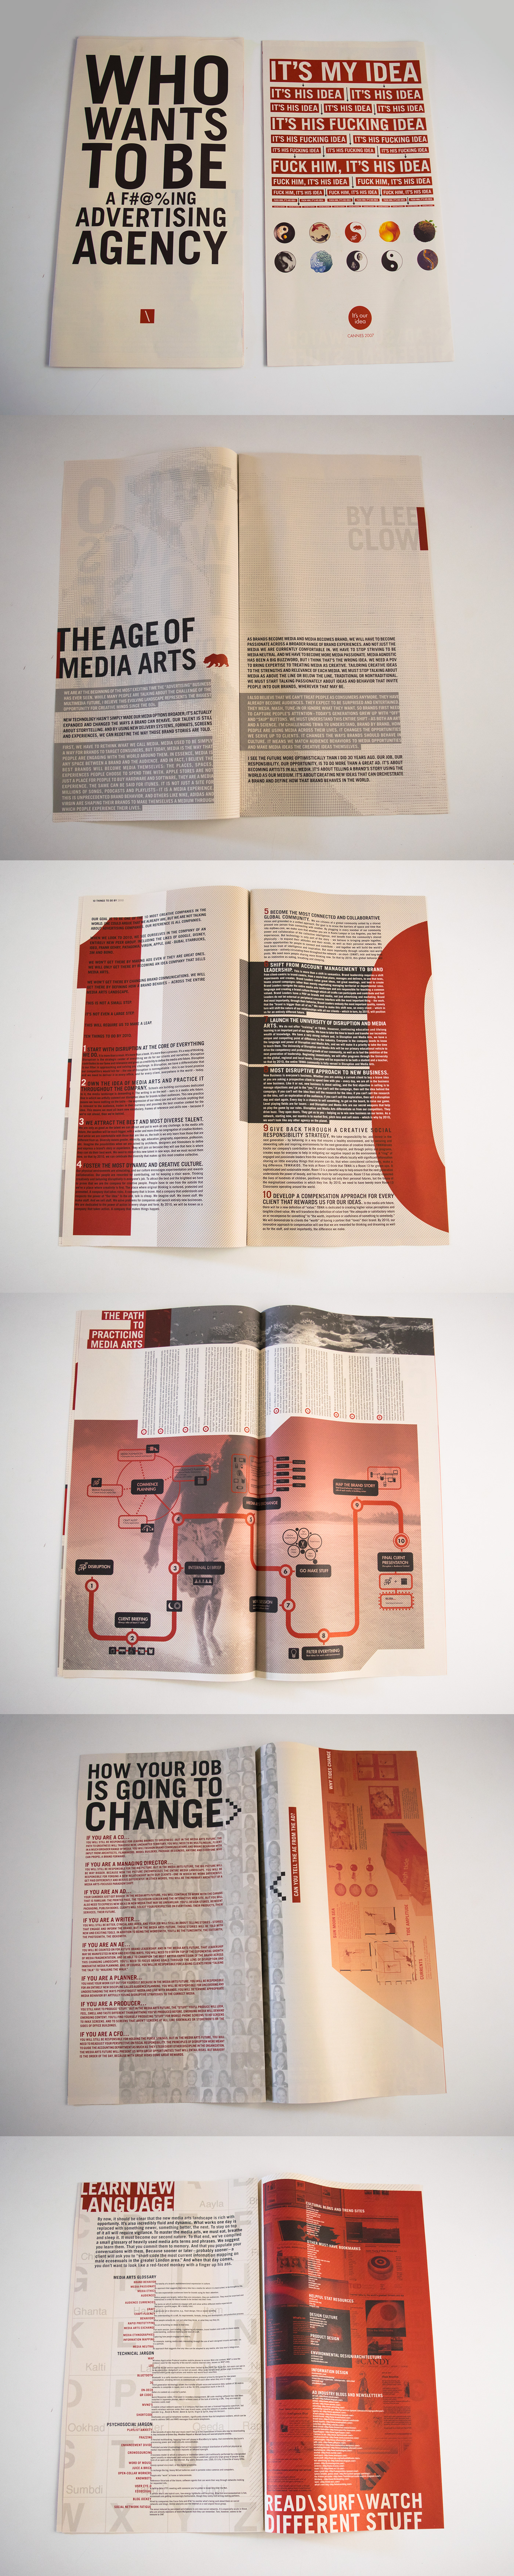 TBWA Network: Media Arts Newspaper for Cannes